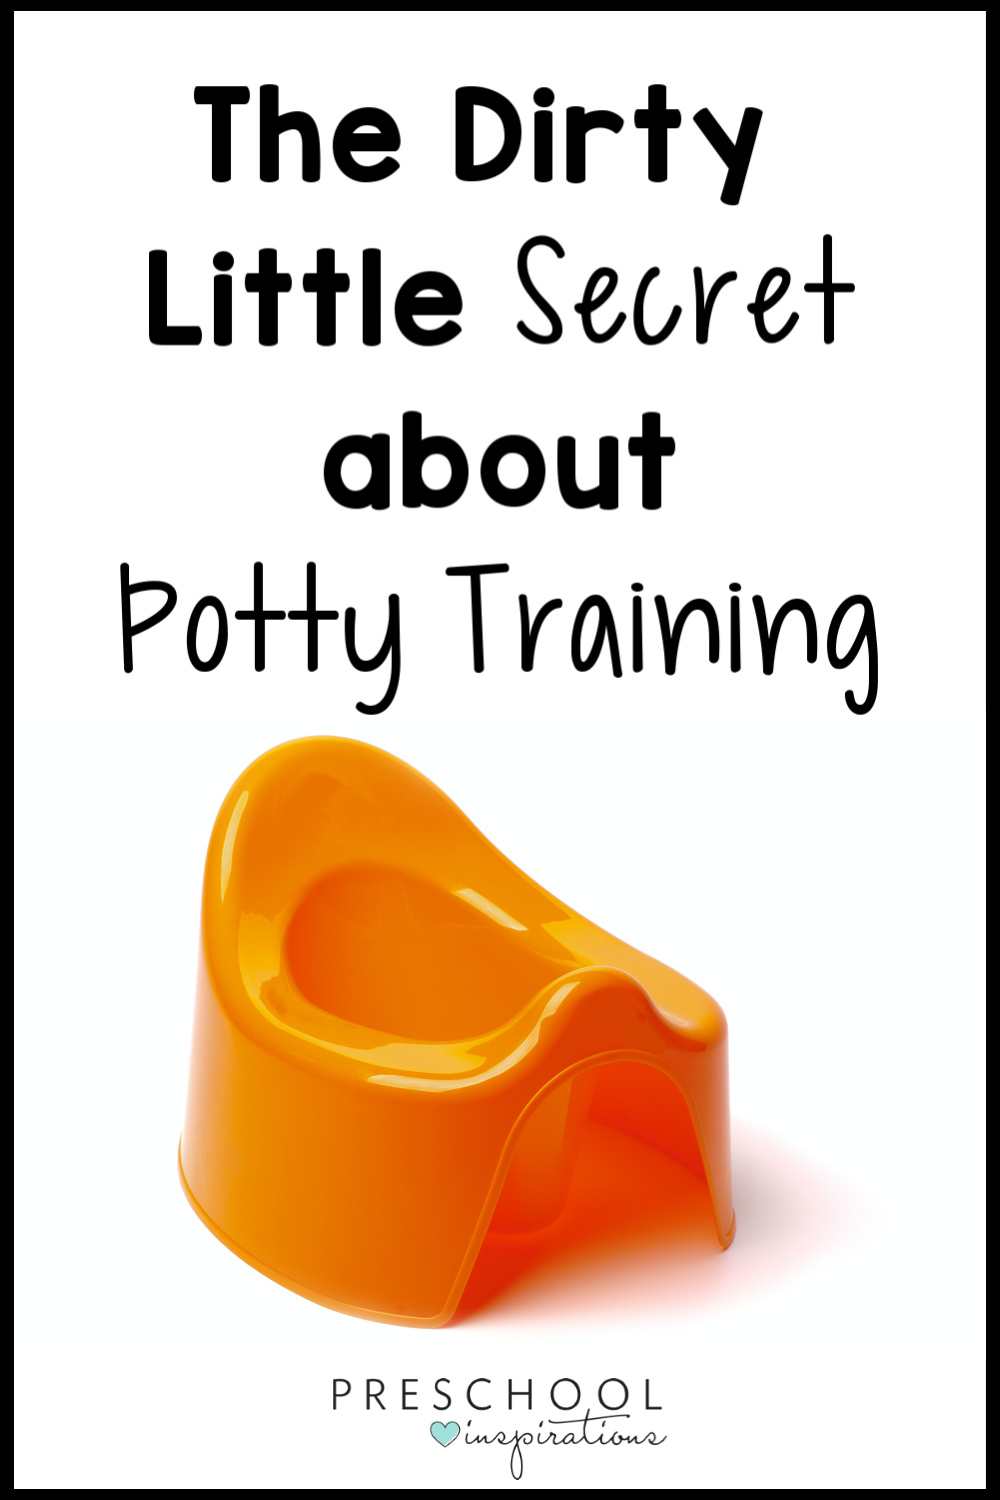 One of the most popular training methods out there is actually one that creates stress, anxiety, and fear in children. Find out why, and ease the potty training anxiety with tips about a different, PEACEFUL method!